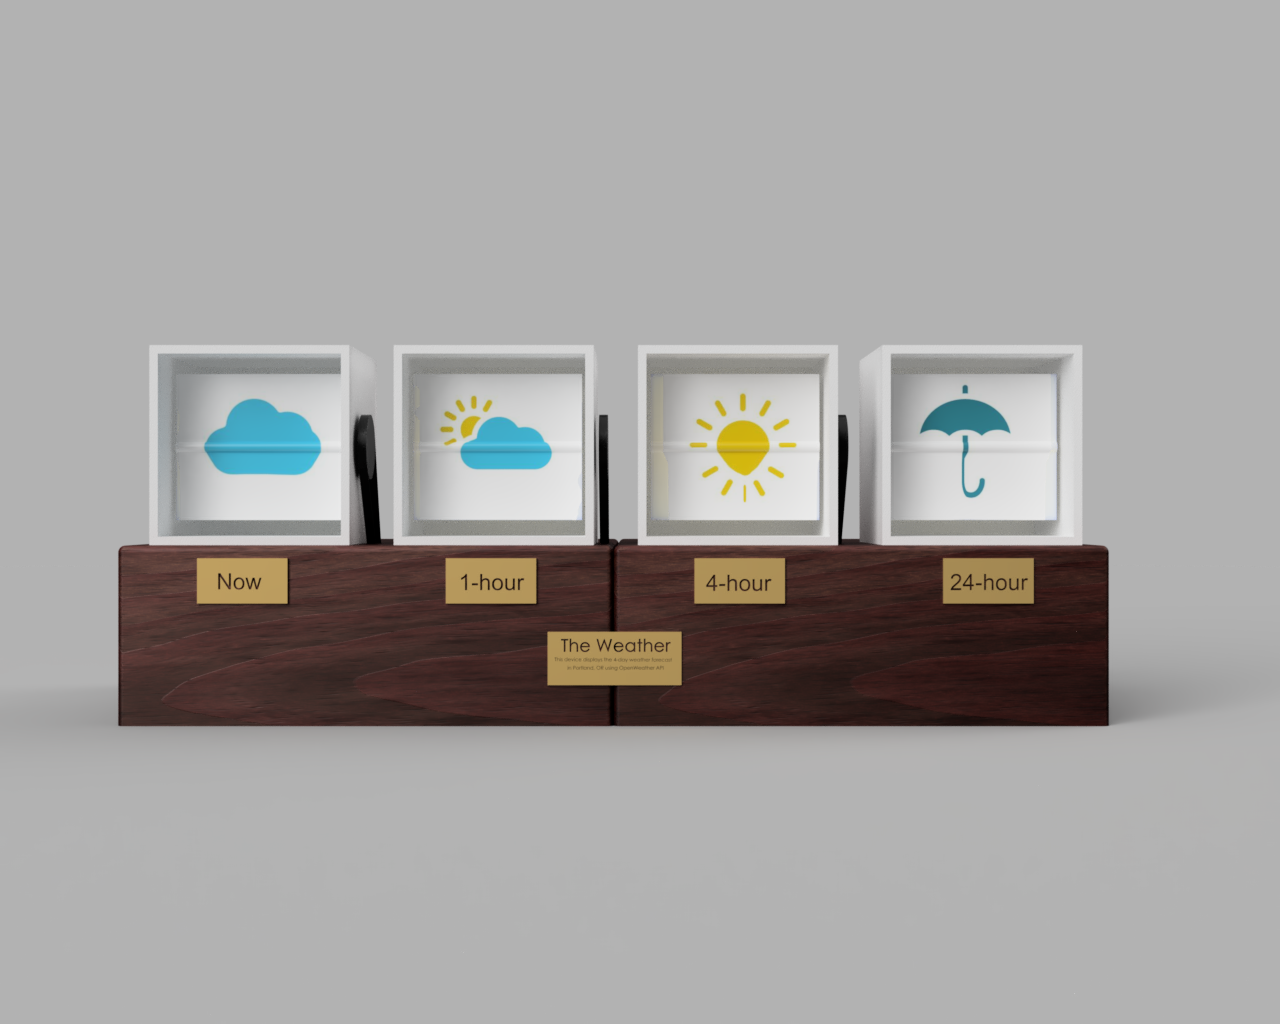 weather_2019-Jan-12_03-07-50AM-000_CustomizedView33556596064_png.png